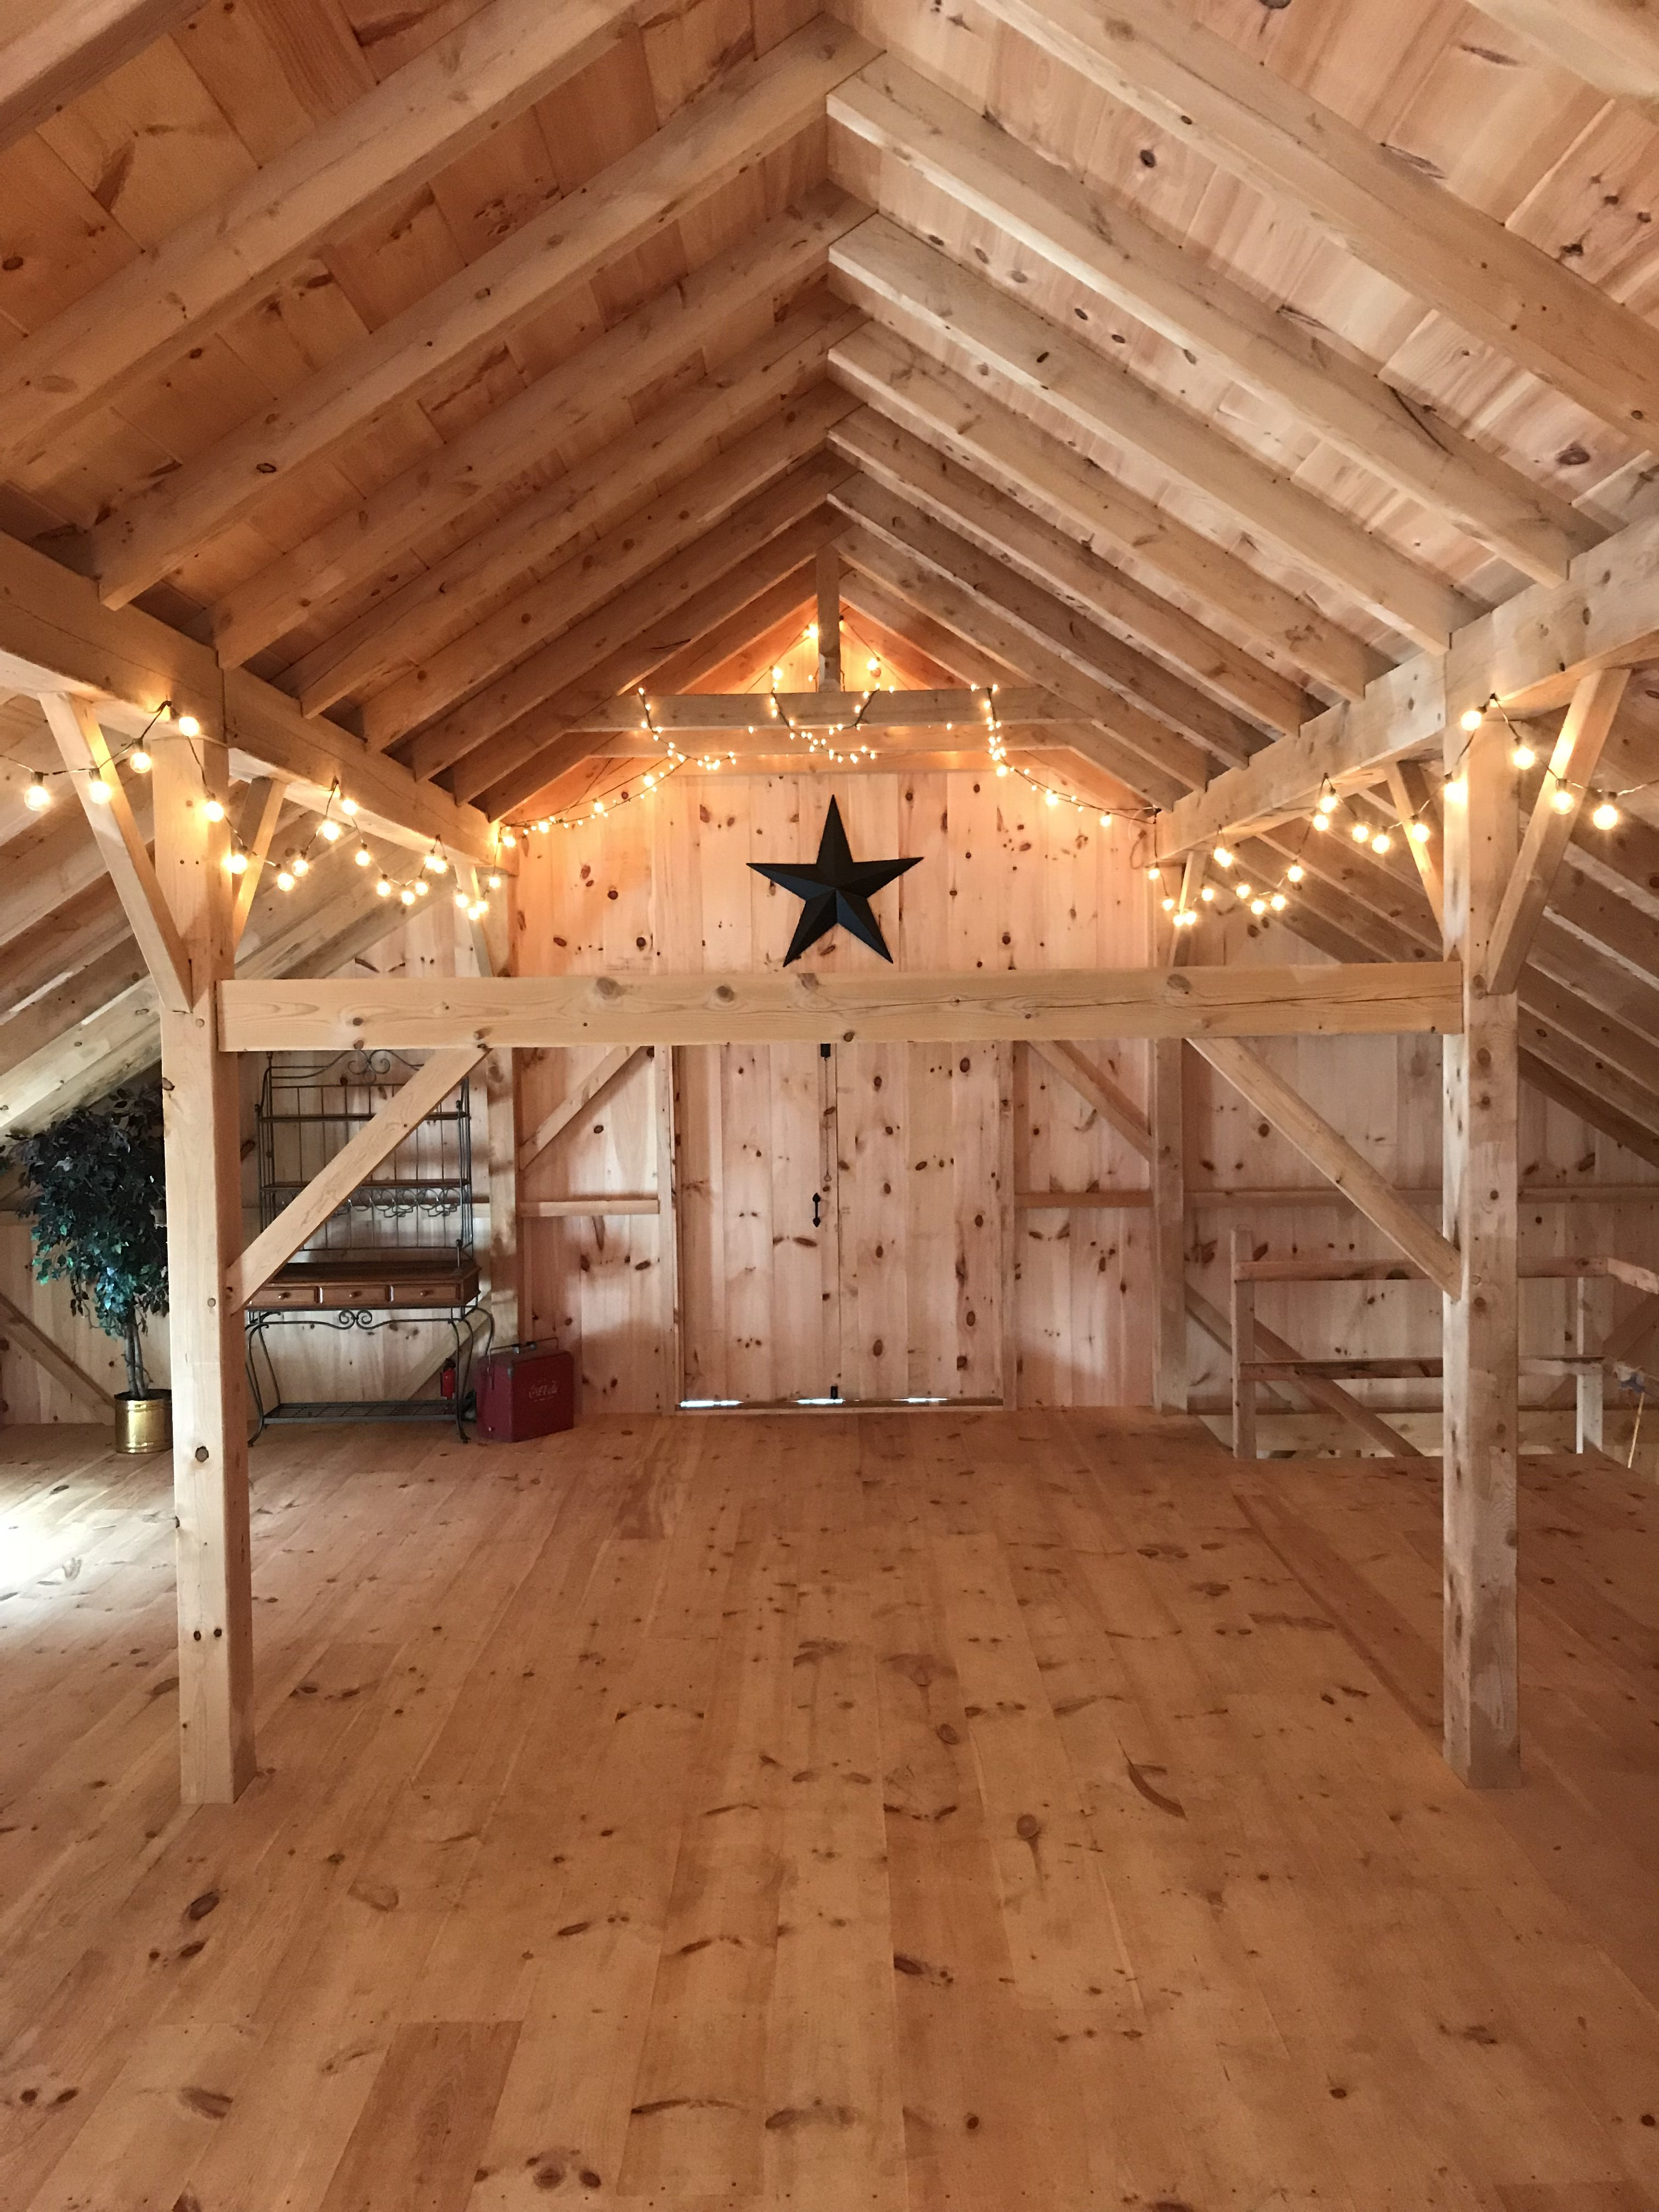 Timber Frame Barn With Black Star And Lights Ware Built